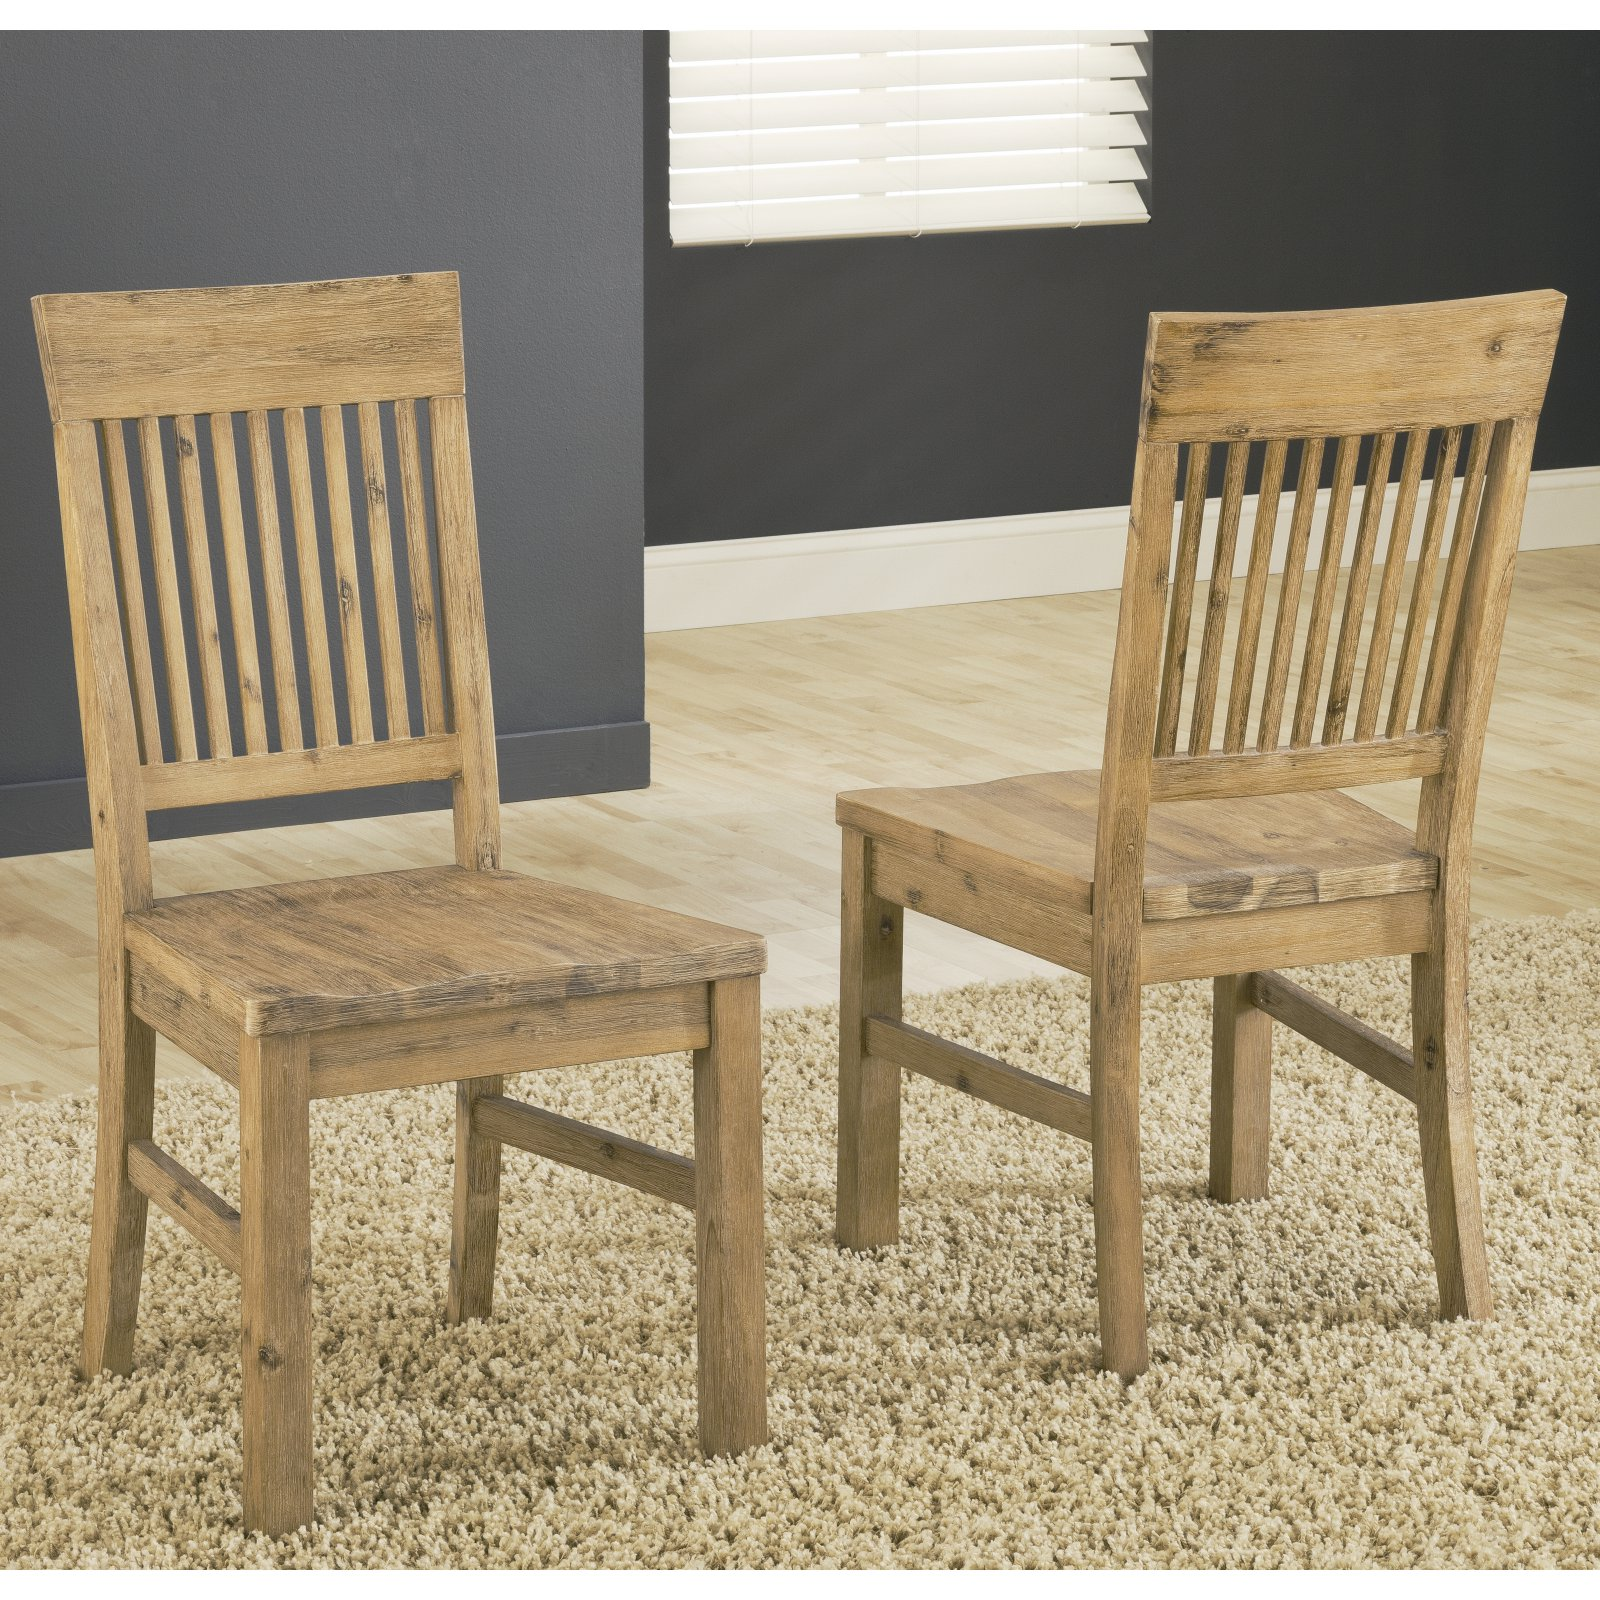 Modus Autumn Solid Wood Dining Side Chair - Cider - Set of 2